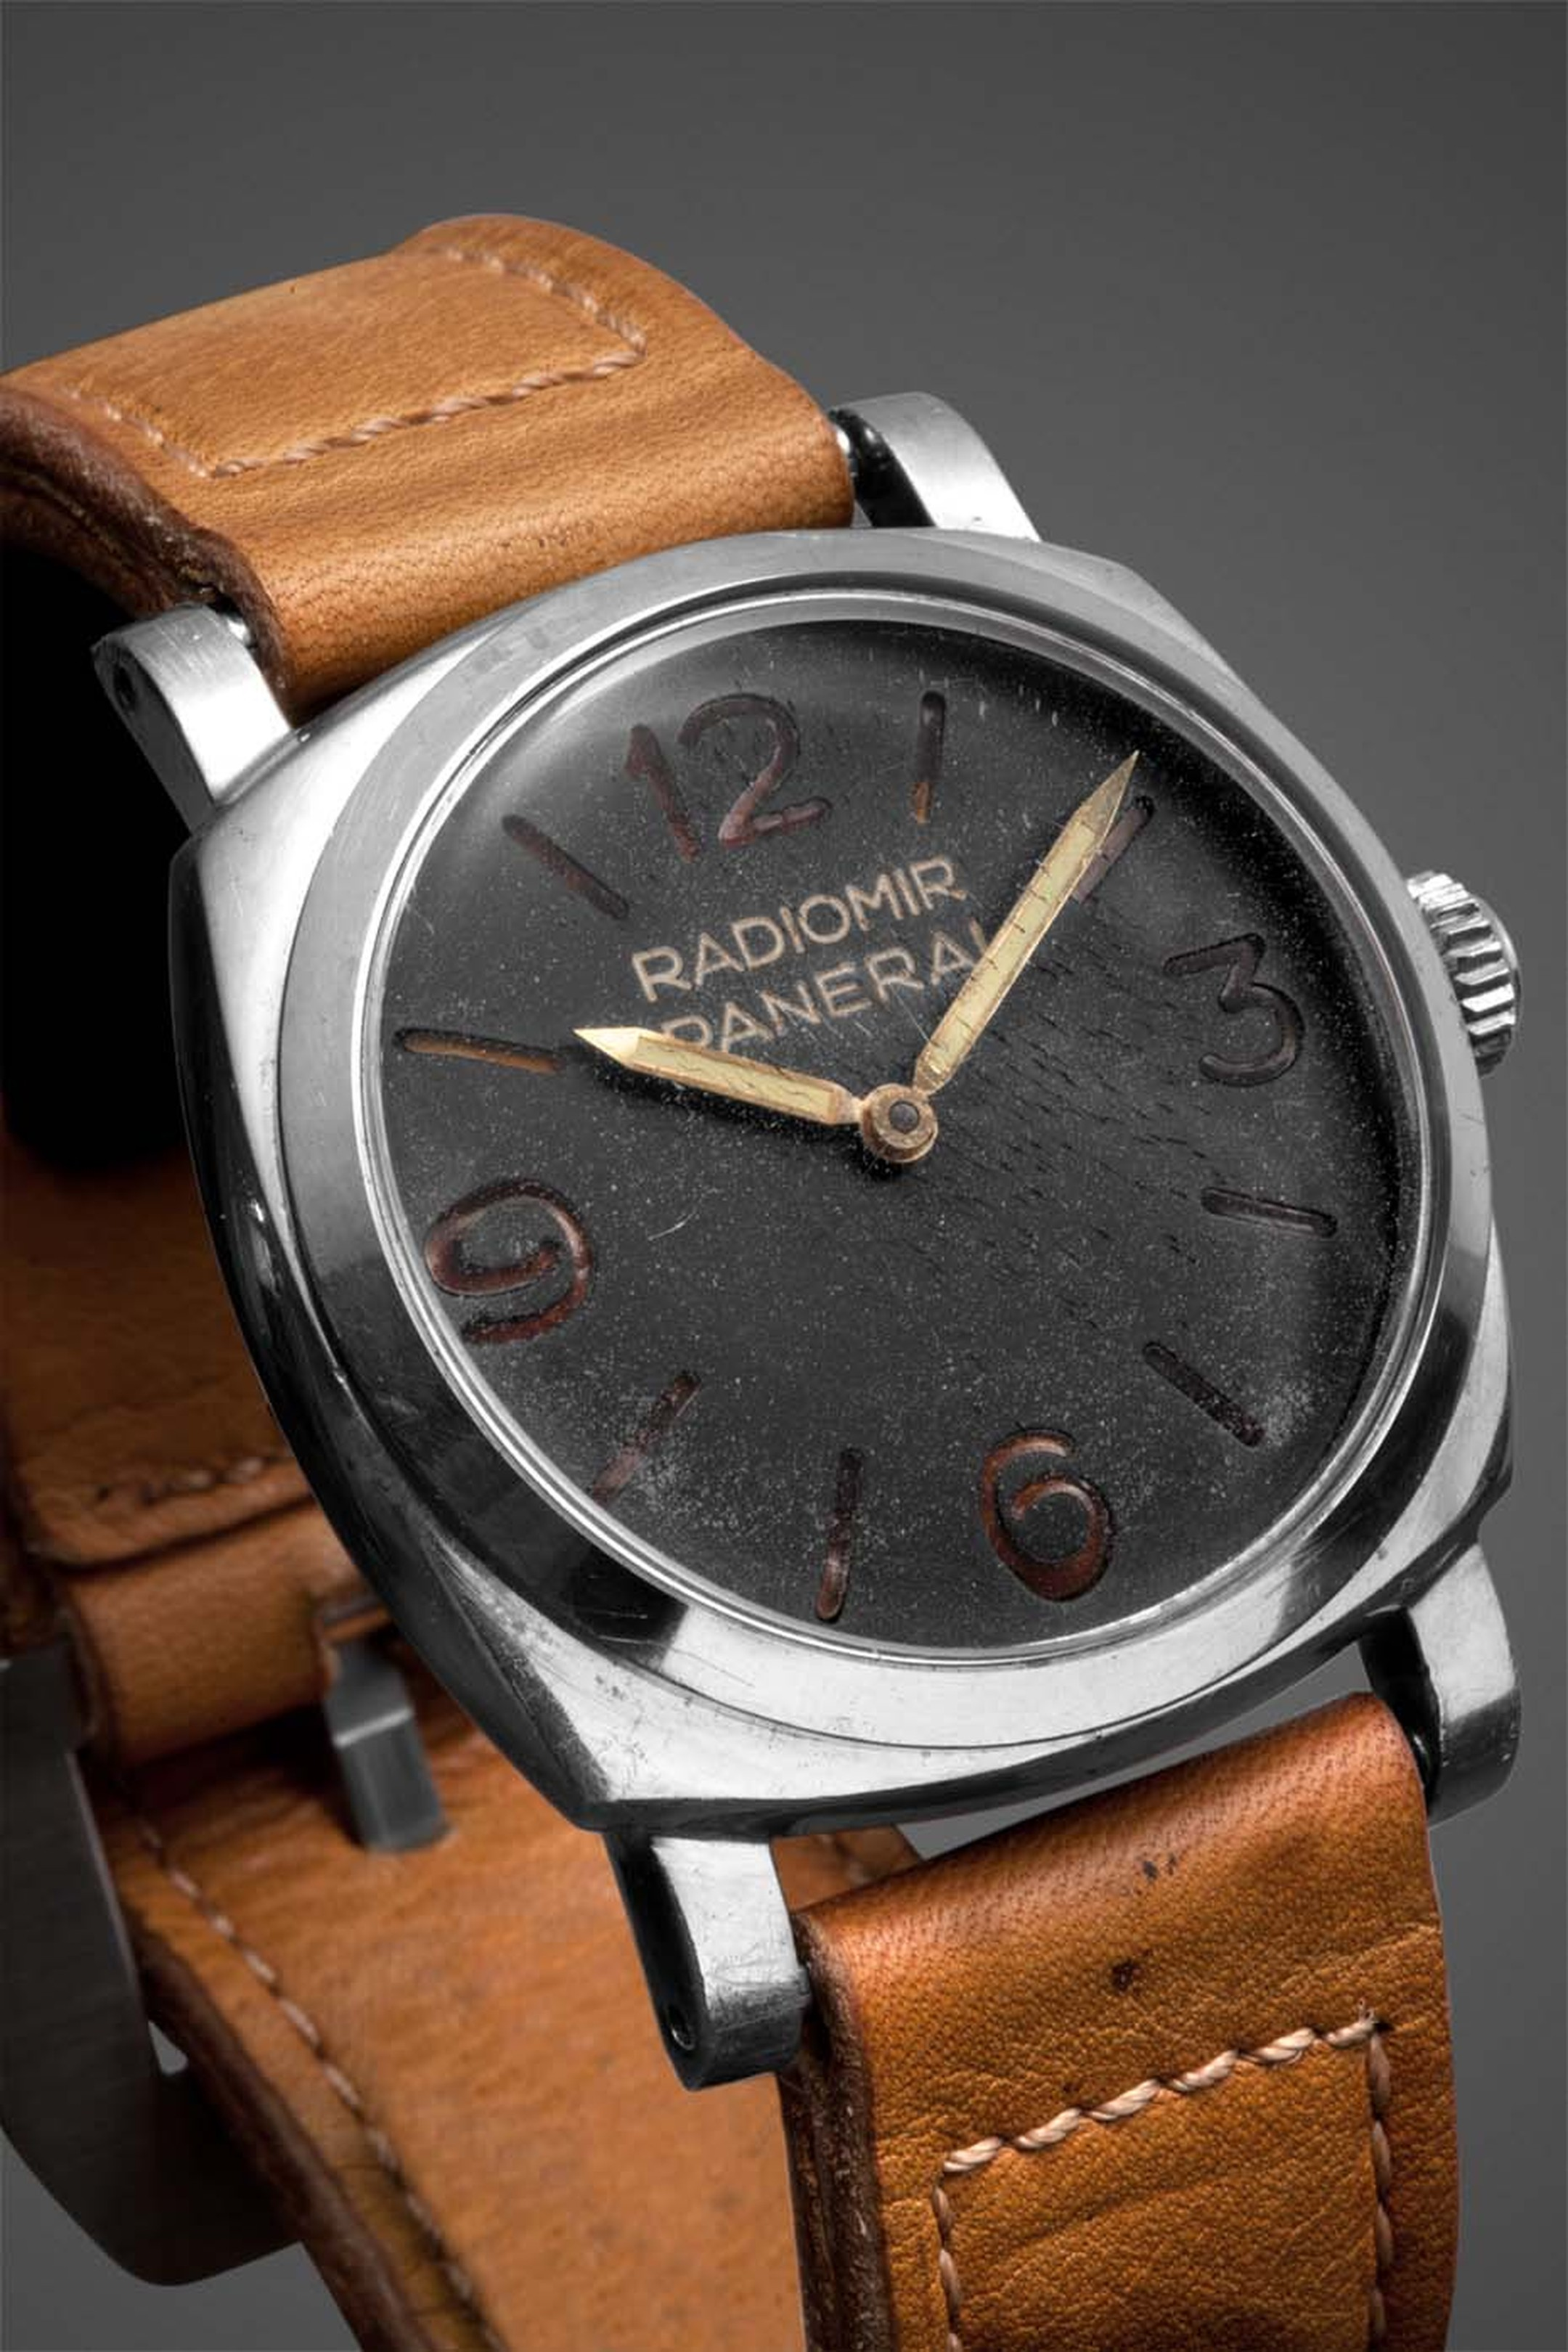 By 1940 the Panerai Radiomir watch assumed its definitive physiognomy. With a stronger case made from a single block of steel for increased underwater resistance and reinforced lugs, the dial of the watch was simplified with just four large Arabic numeral